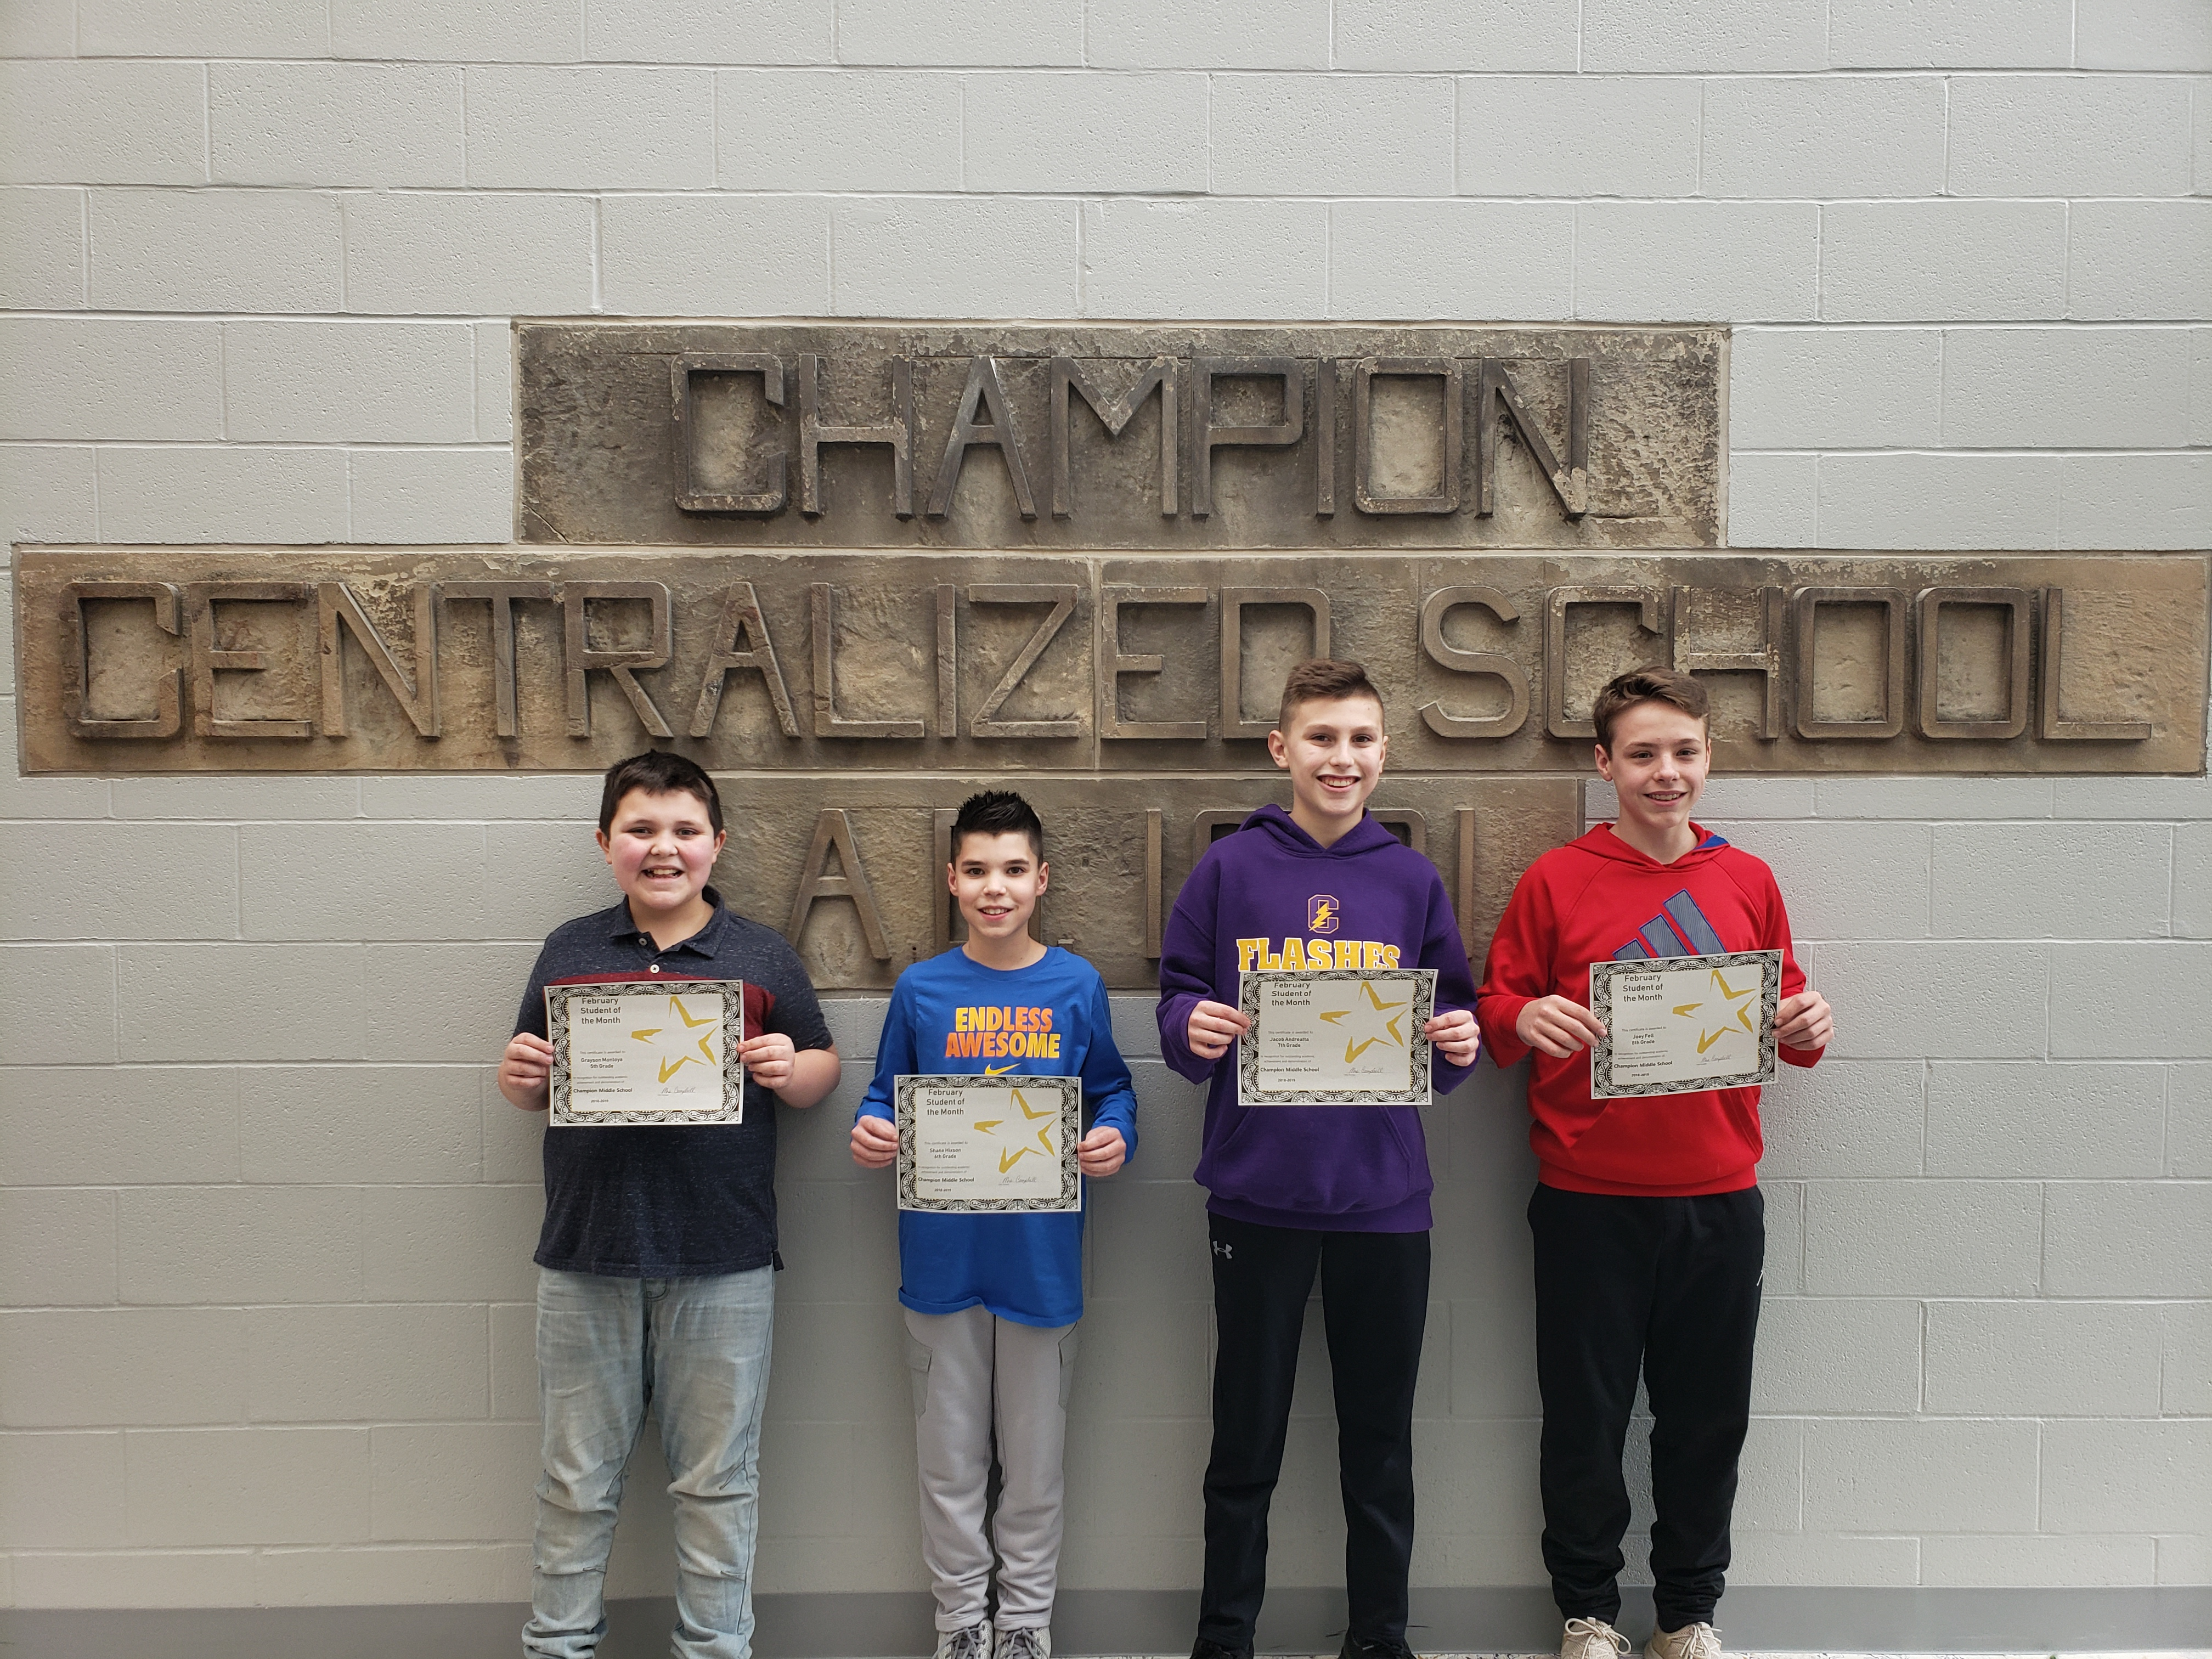 5th grade- Grayson Montoya, 6th Grade-Shane Hixson, 7th Grade-Jacob Andreatta, 8th Grade-Joey Fell